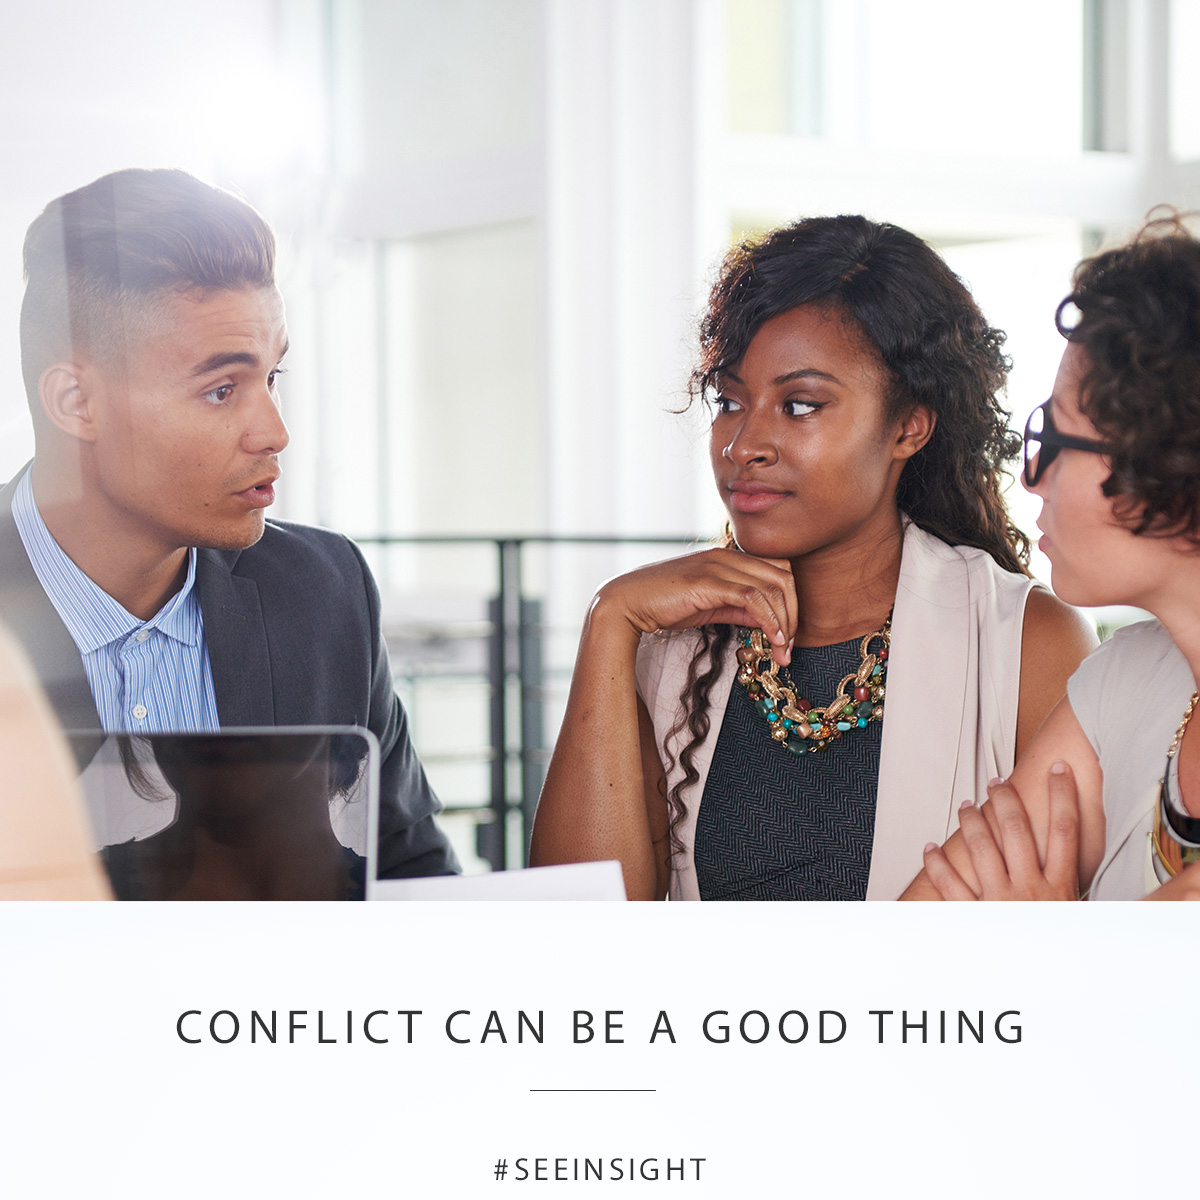 Conflict can be a good thing